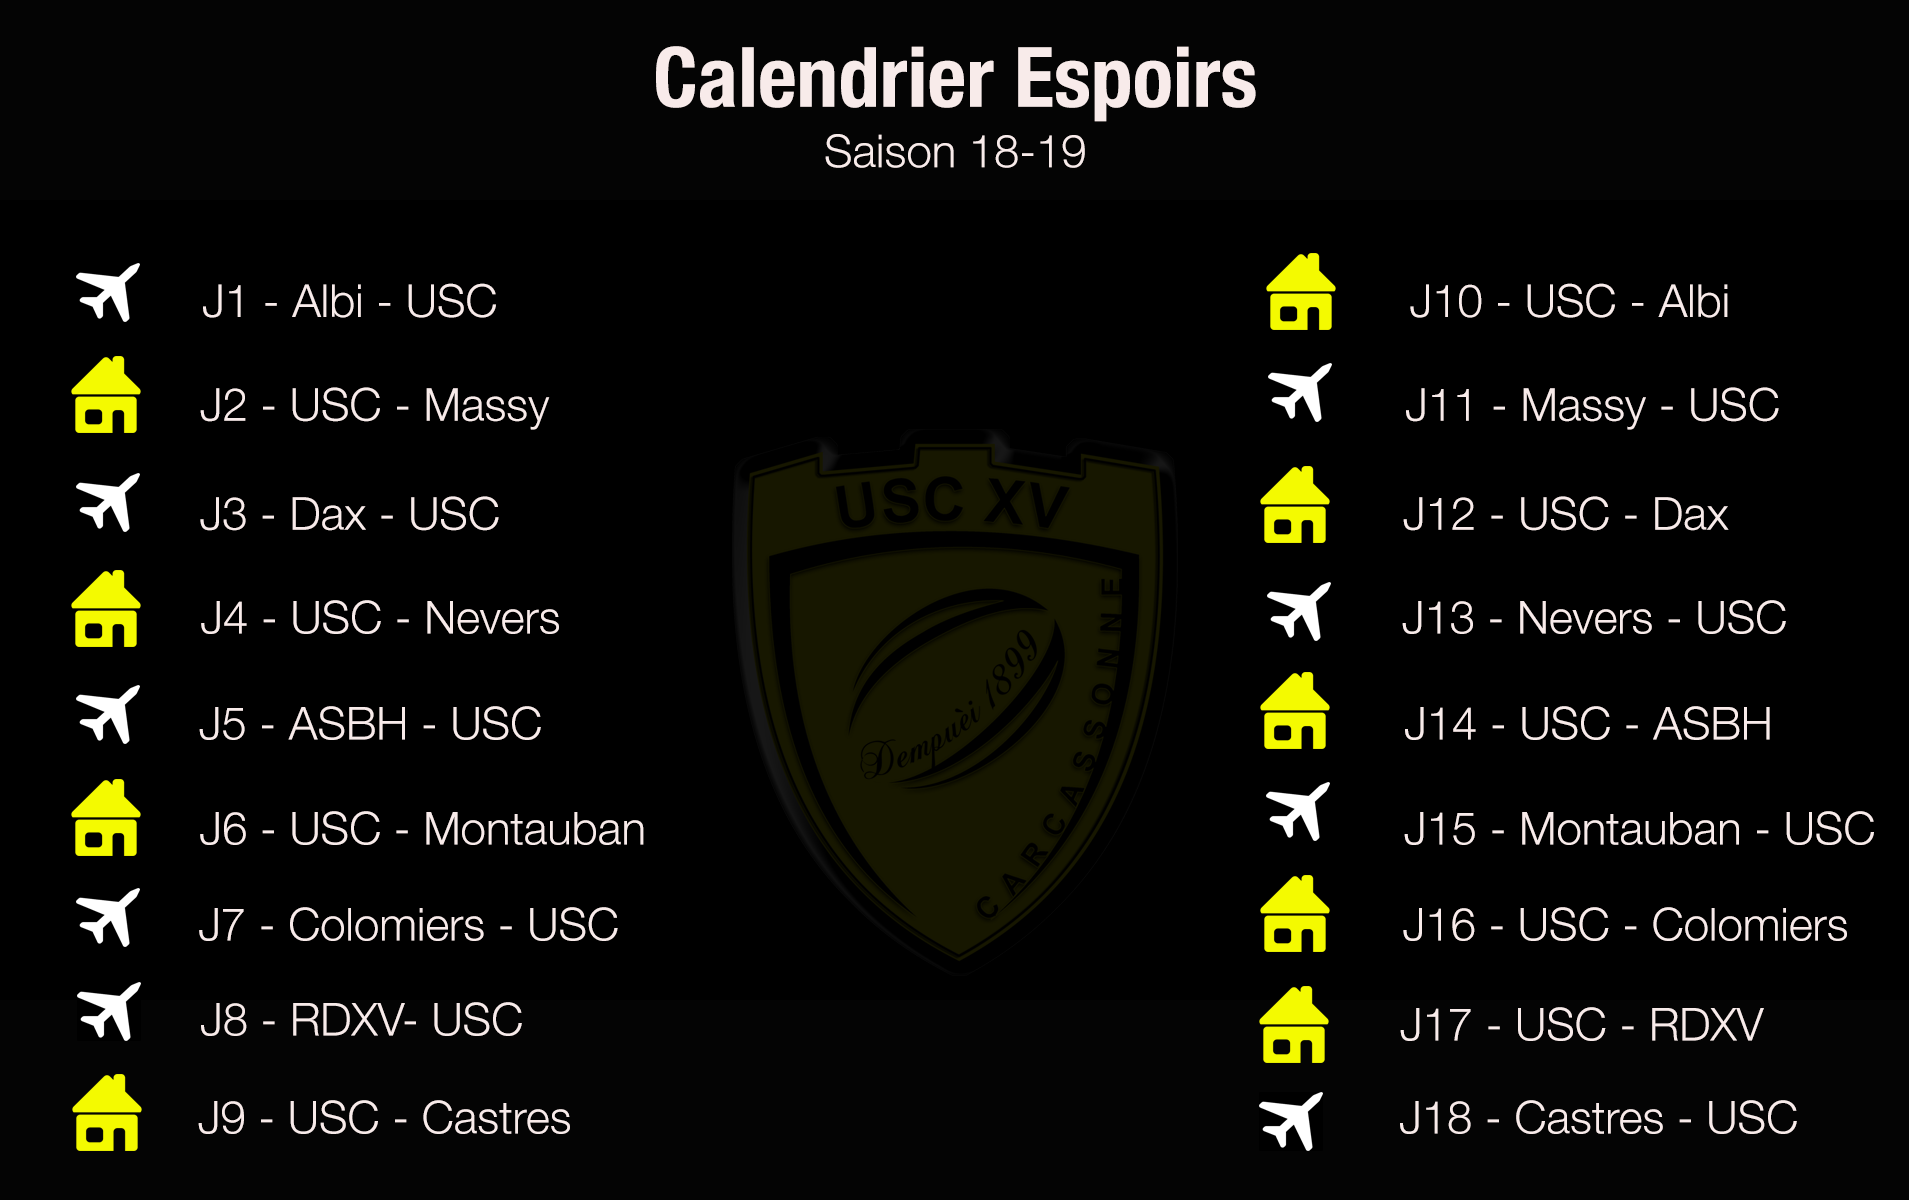 CalendrierEspoirs18-19